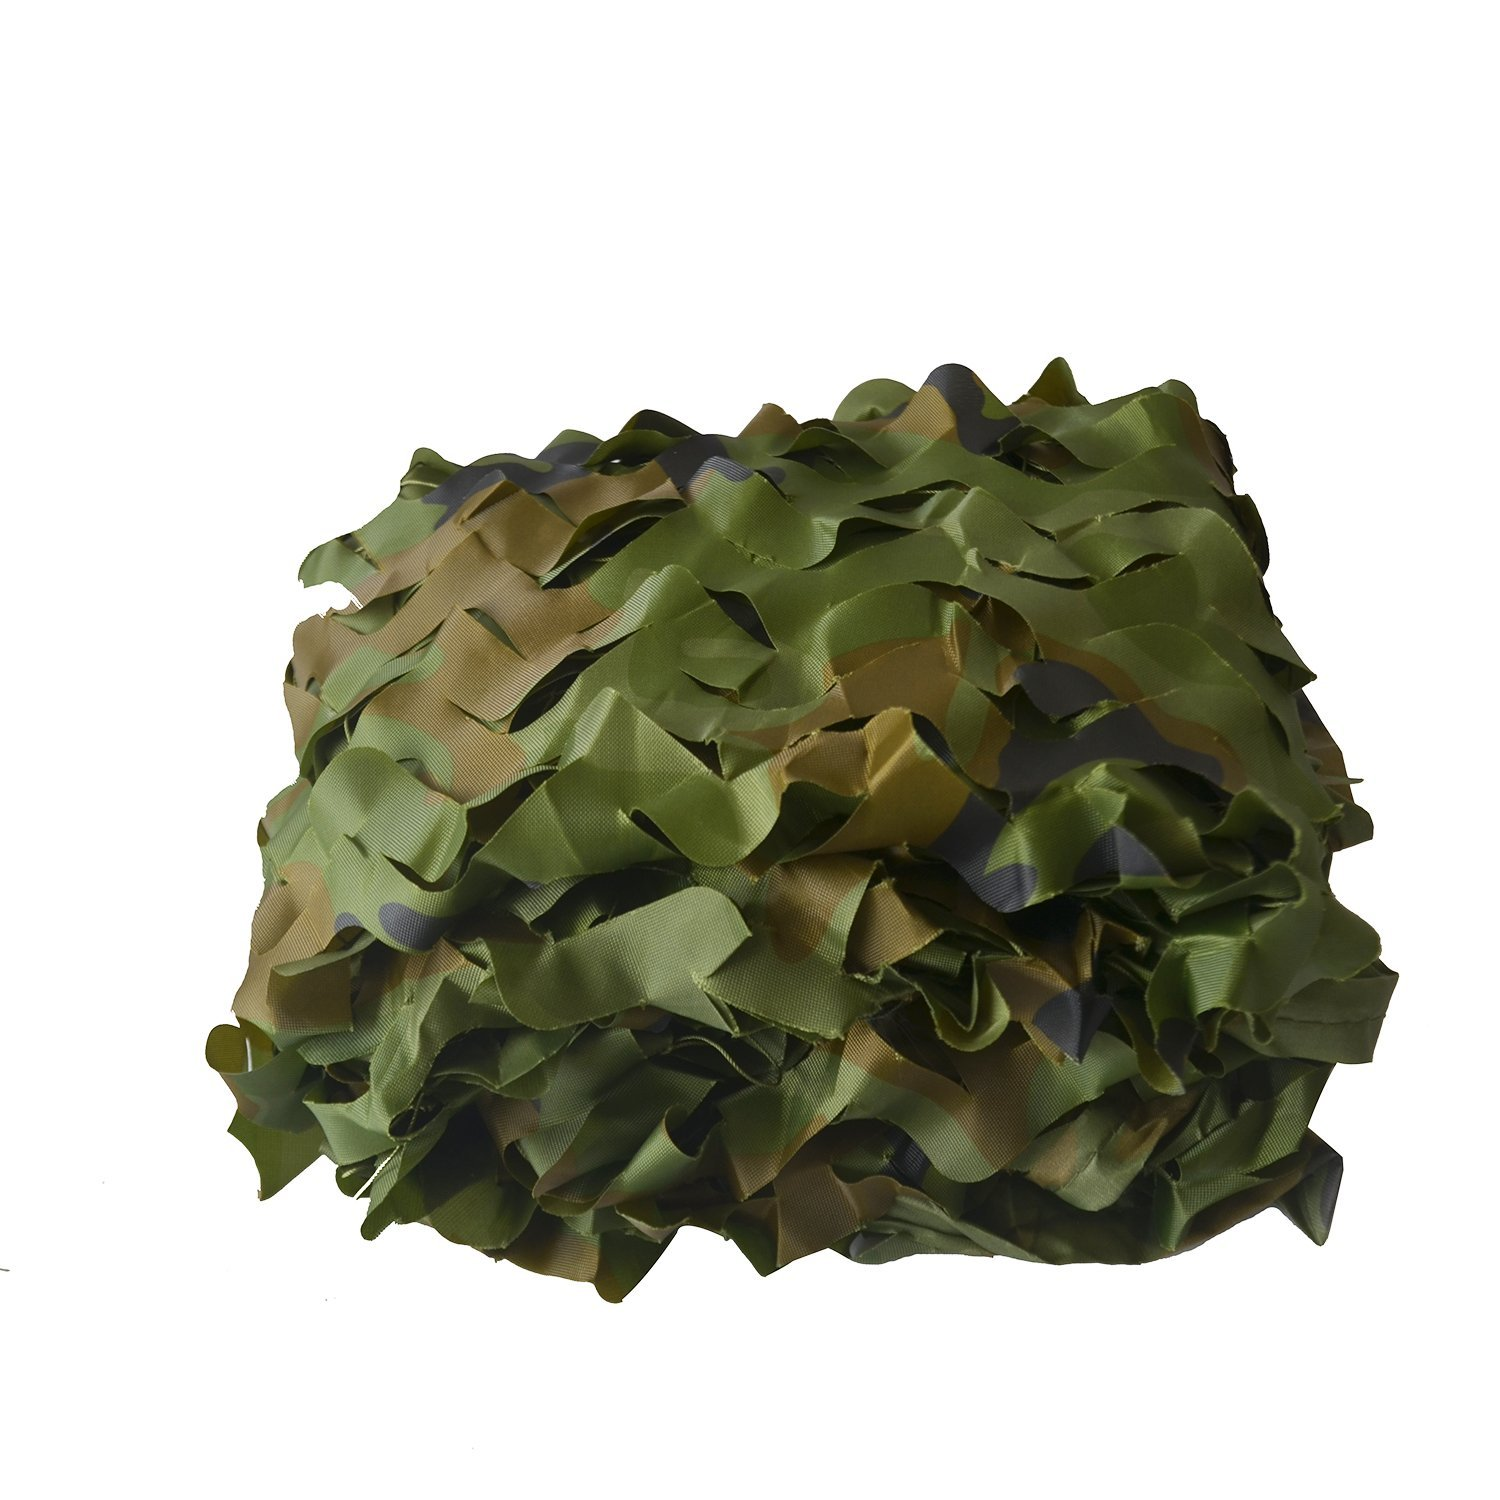 Mitef Woodland Camo Netting Blinds Camouflage Net For Camping Hunting Shooting Sunscreen Net 3.3x6.7ft 4.9x13.3ft 6.8x10ft 10x10ft 10x13.3ft 13.3x16.6ft 16.6x20ft 20x20ft etc,1pack